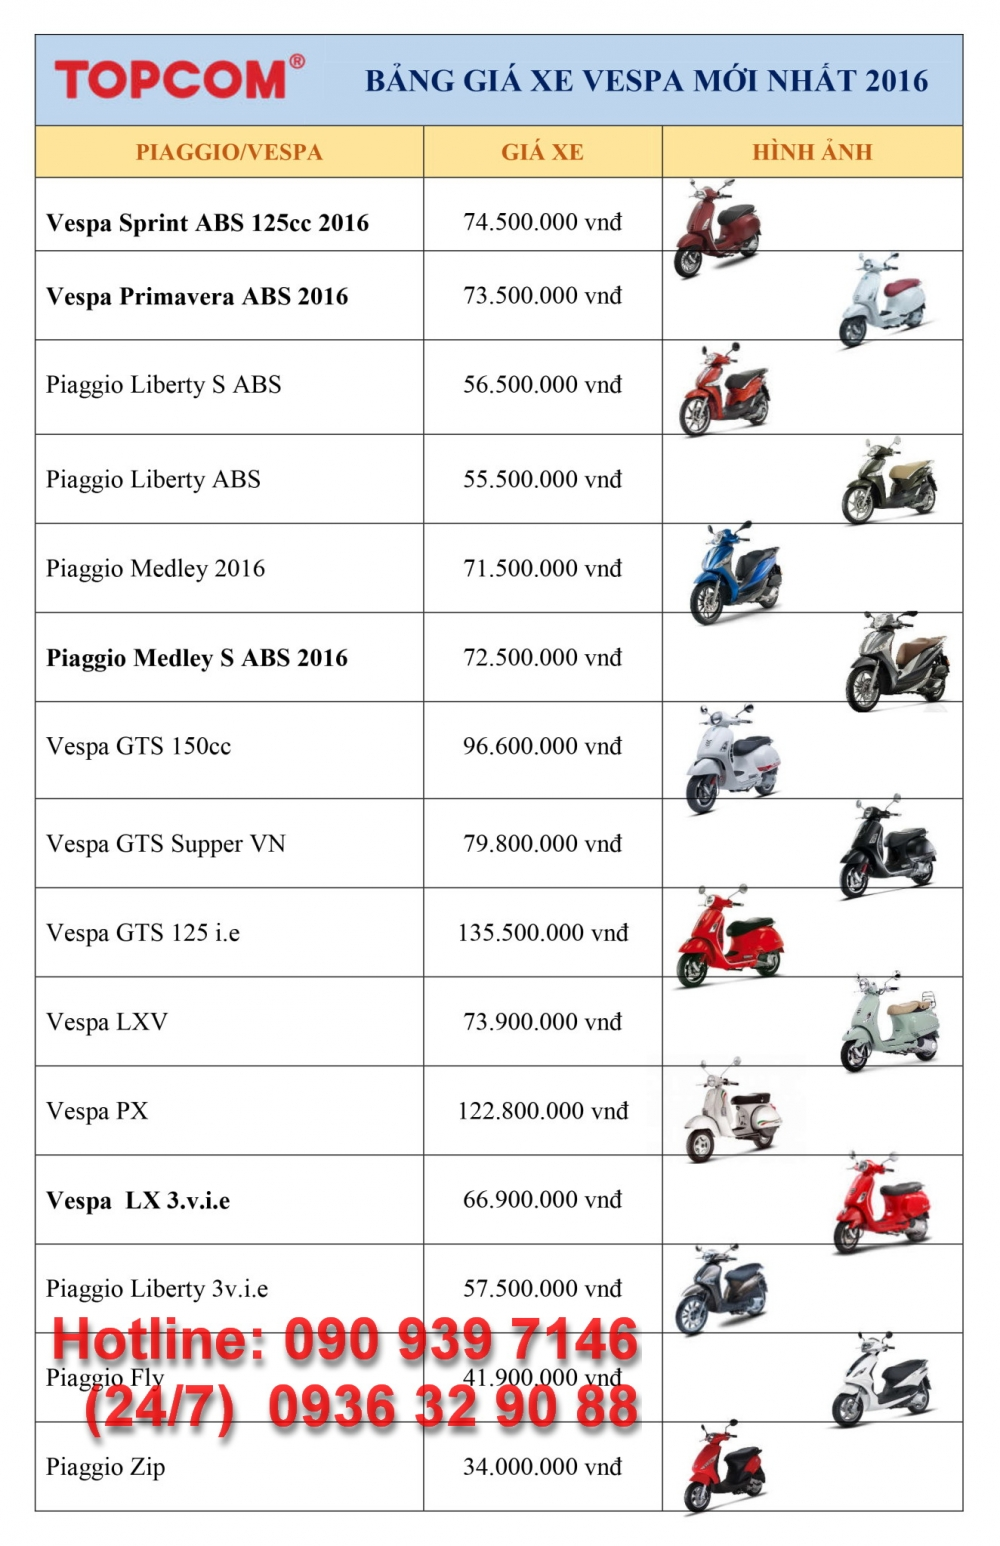 VESPA chinh hang gia tot nhat Update lien tuc - 26